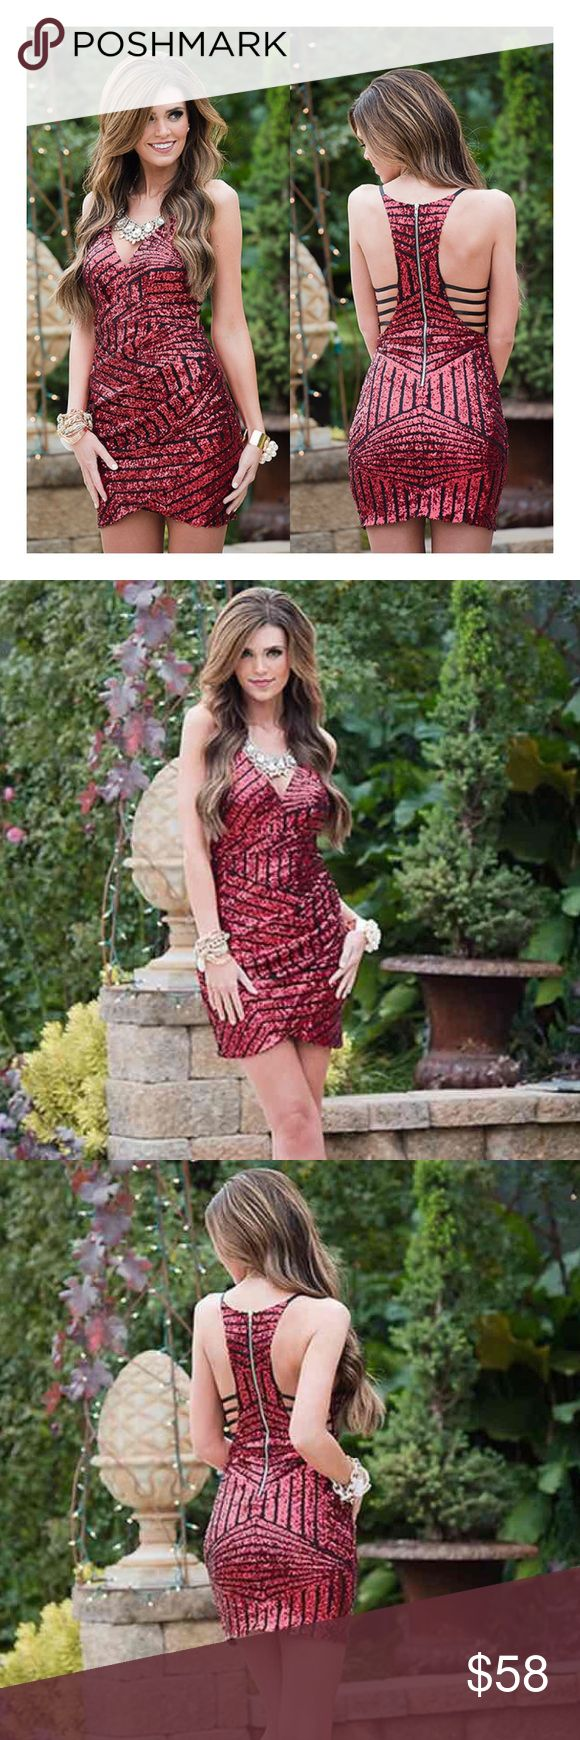 Stunning red sequin dress MODEL IS WEARING THE EXACT PRODUCT    I own an online boutique called Danalli, most of what we sell are brands/items you'll find at stores such as Nasty Gal, Urban Outfitters, Nordstrom, ASOS, PacSun, etc. just at more affordable prices   Any questions? Don't hesitate to ask  Dresses Mini